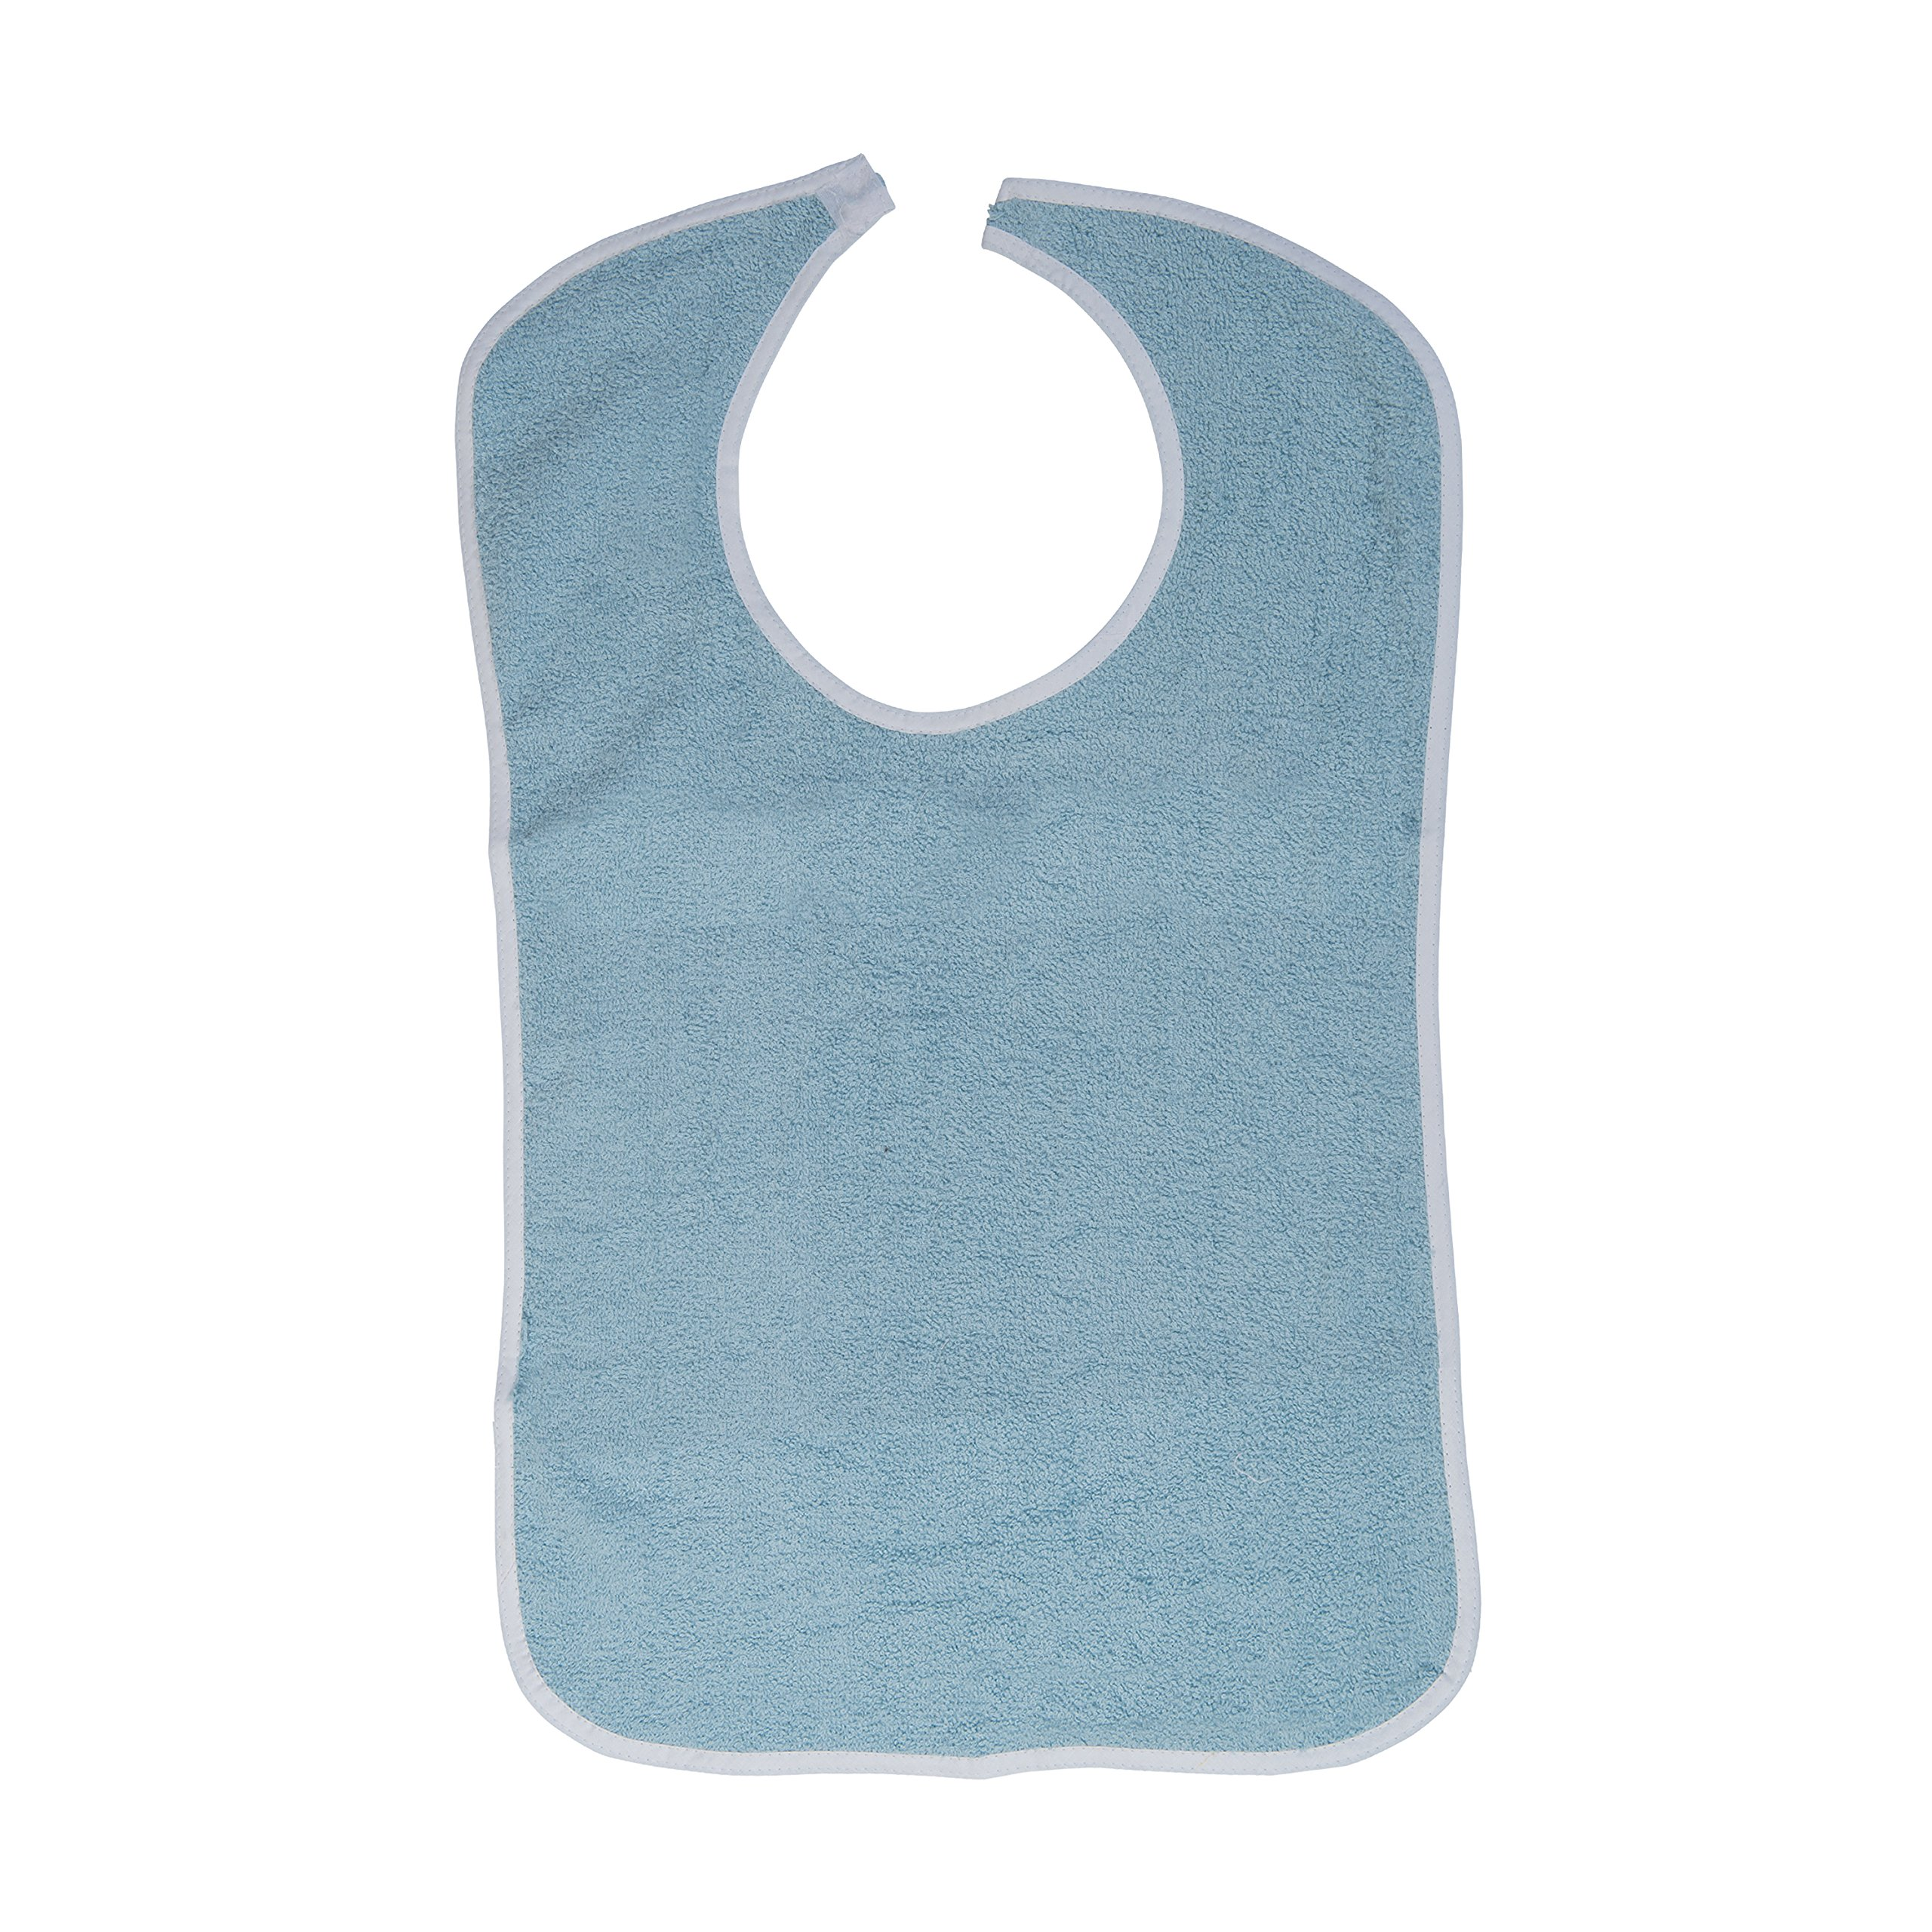 DMI Washable Reuseable Patient Clothing Protector Terry Cloth Adult Bib with Hook and Loop Closure for Men and Women, Blue